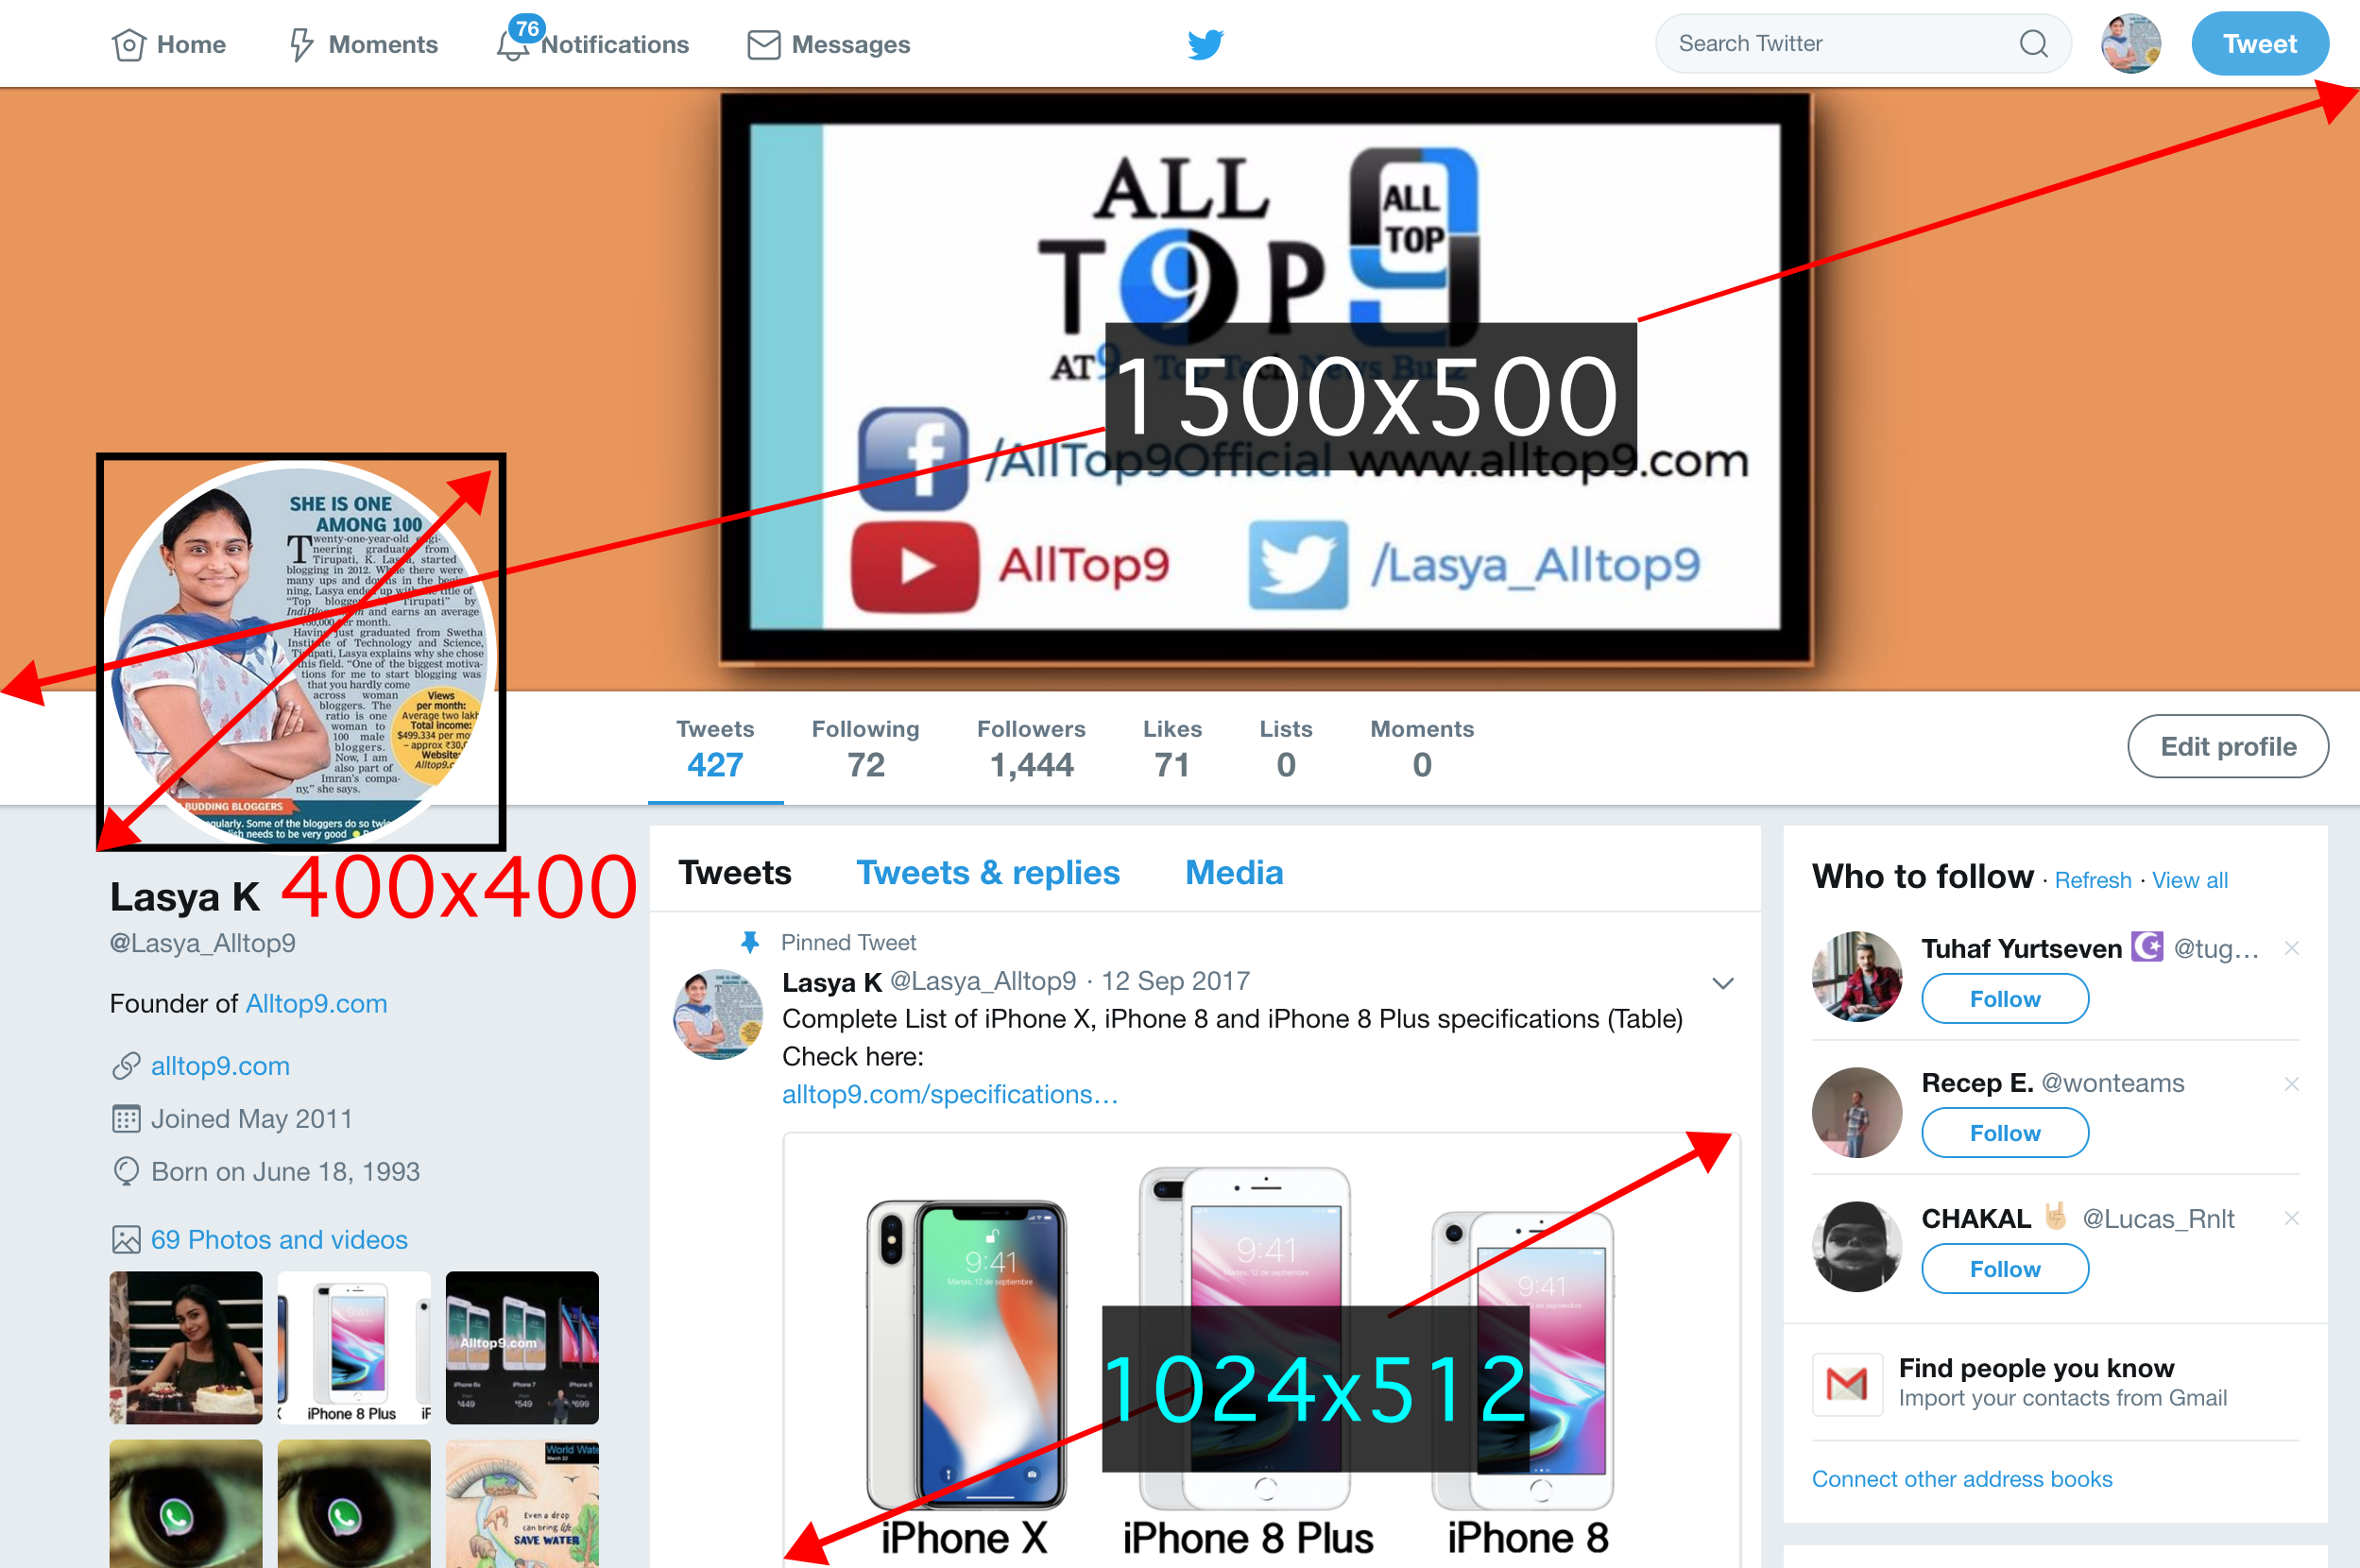 twitter-profile-cover-sharing-image-sizes-dimentions